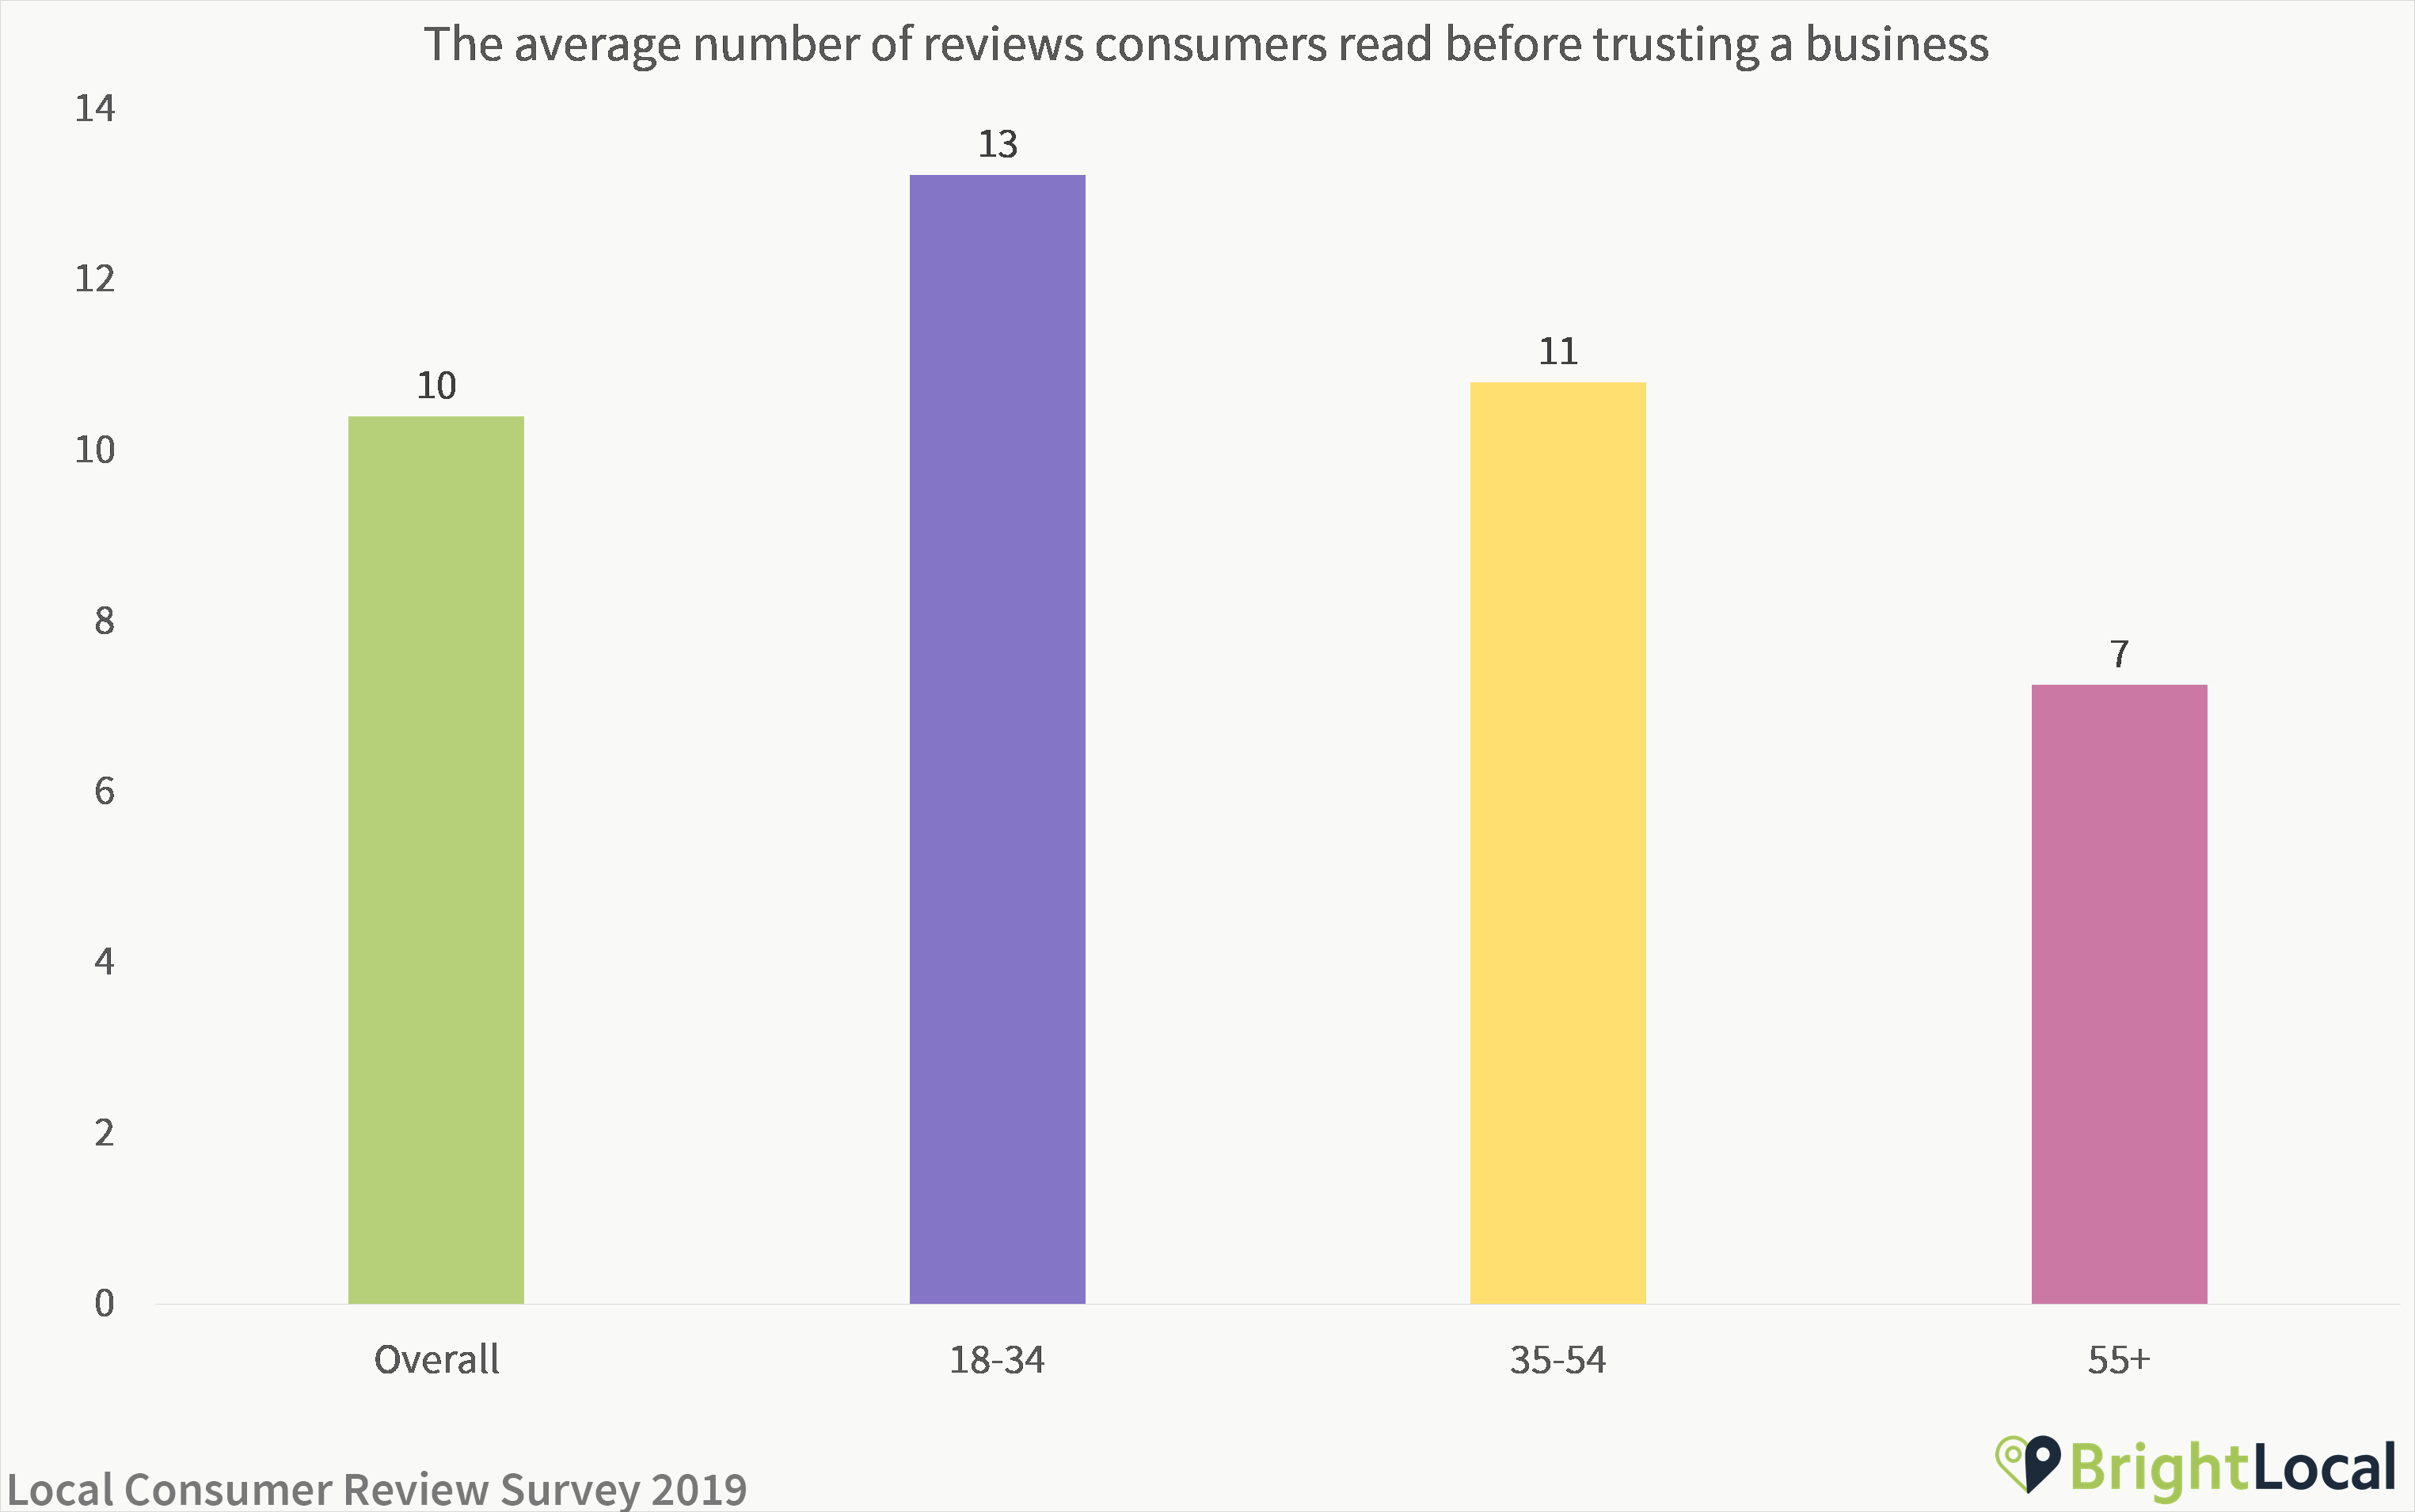 Average number of consumer reviews read